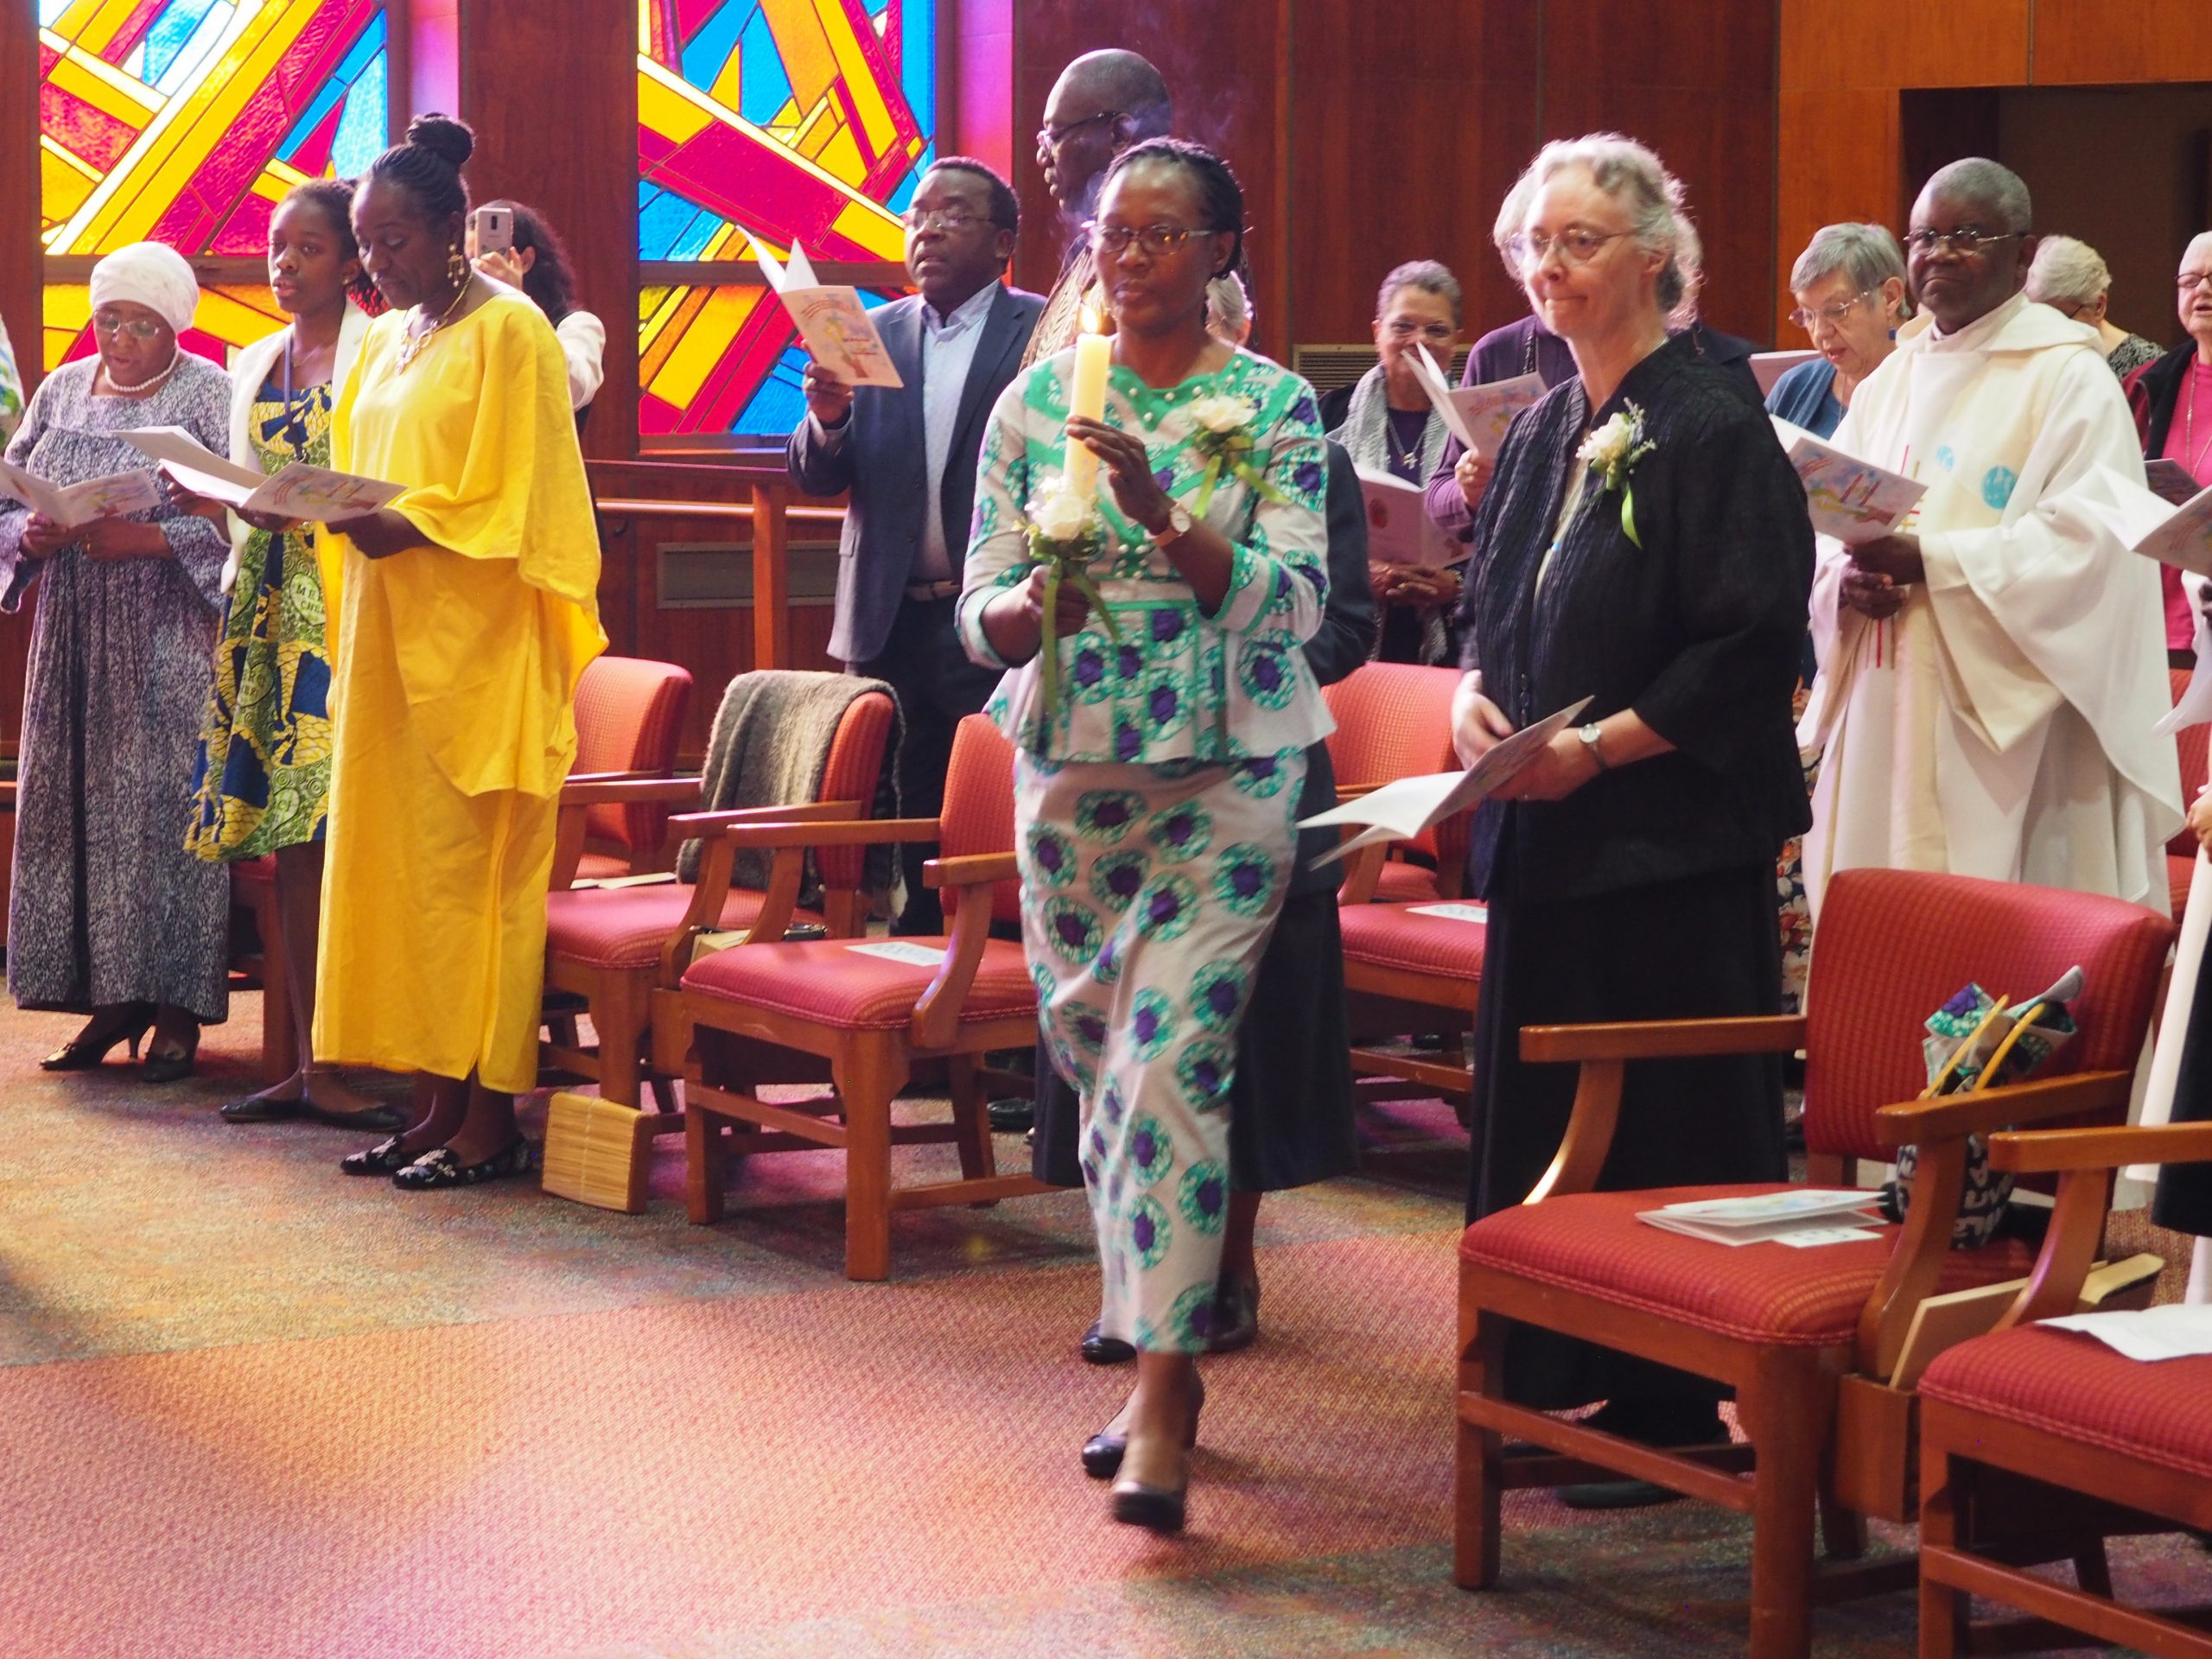 Sisters, priest and guests in a chapel.